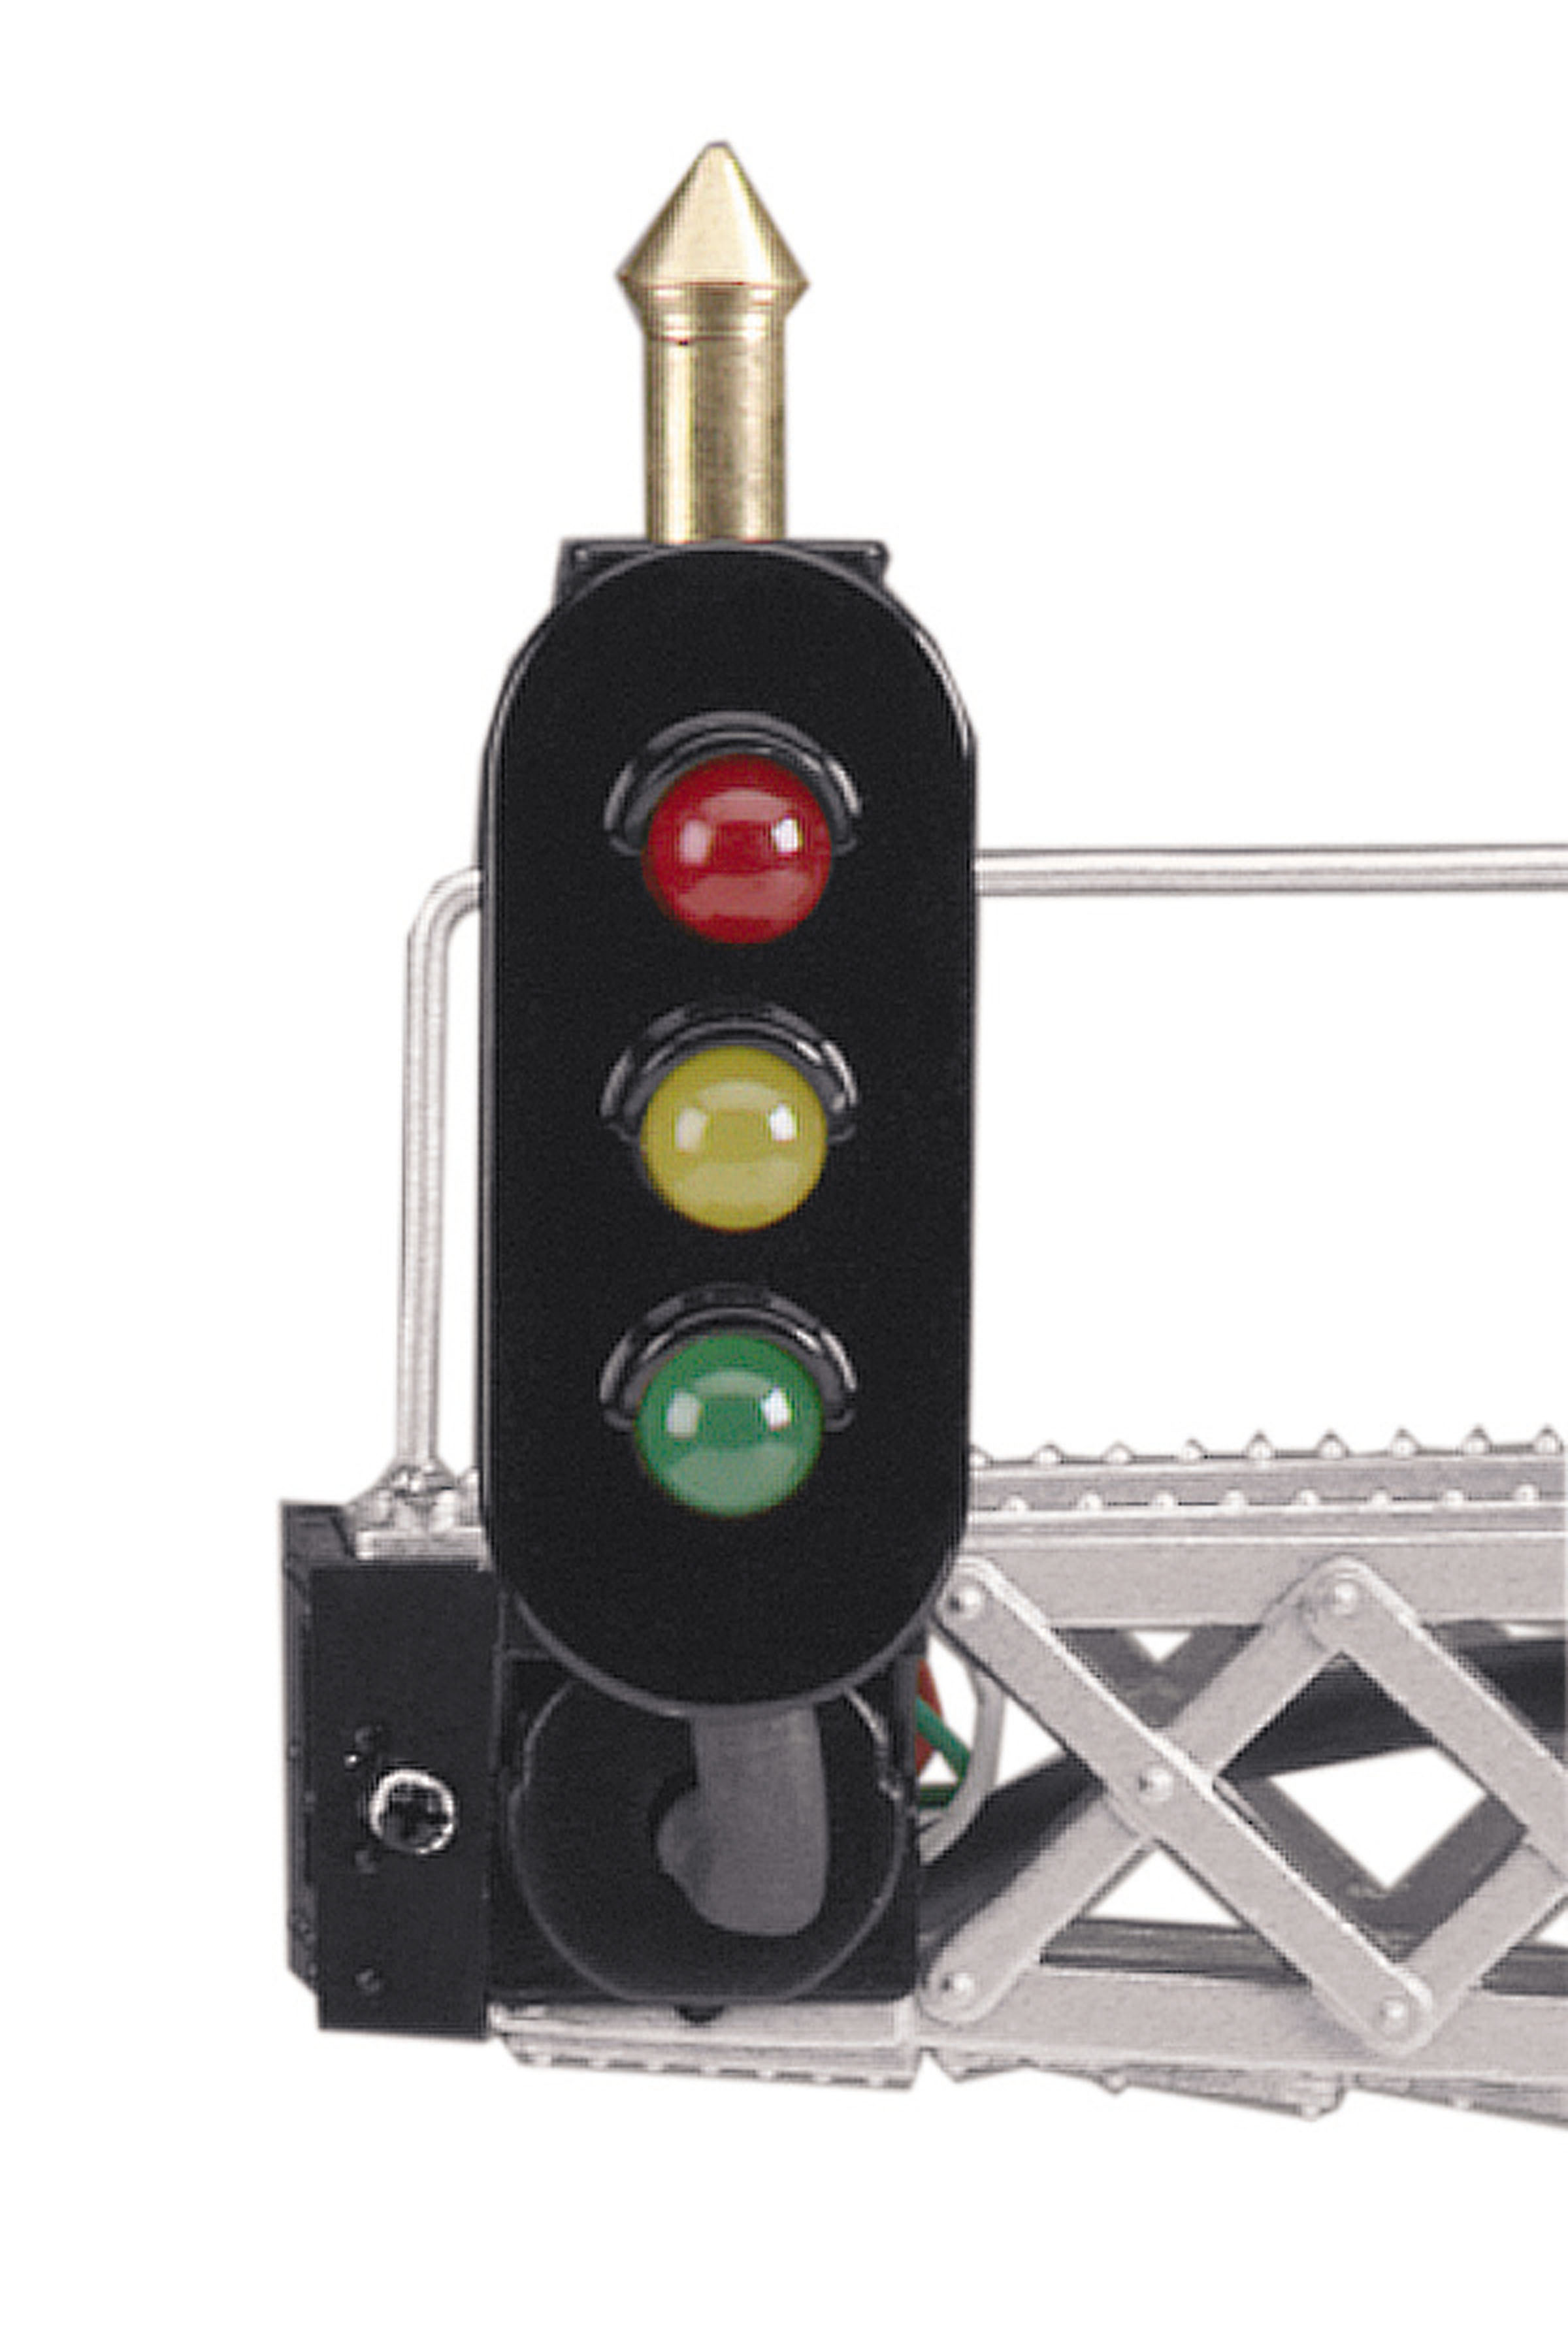 Buildings Bridges Structures Just Trains Of Delaware Supplying Wiring Lionel Block Signal Mth30 10009a O Scale Cantilevered Bridge Lights